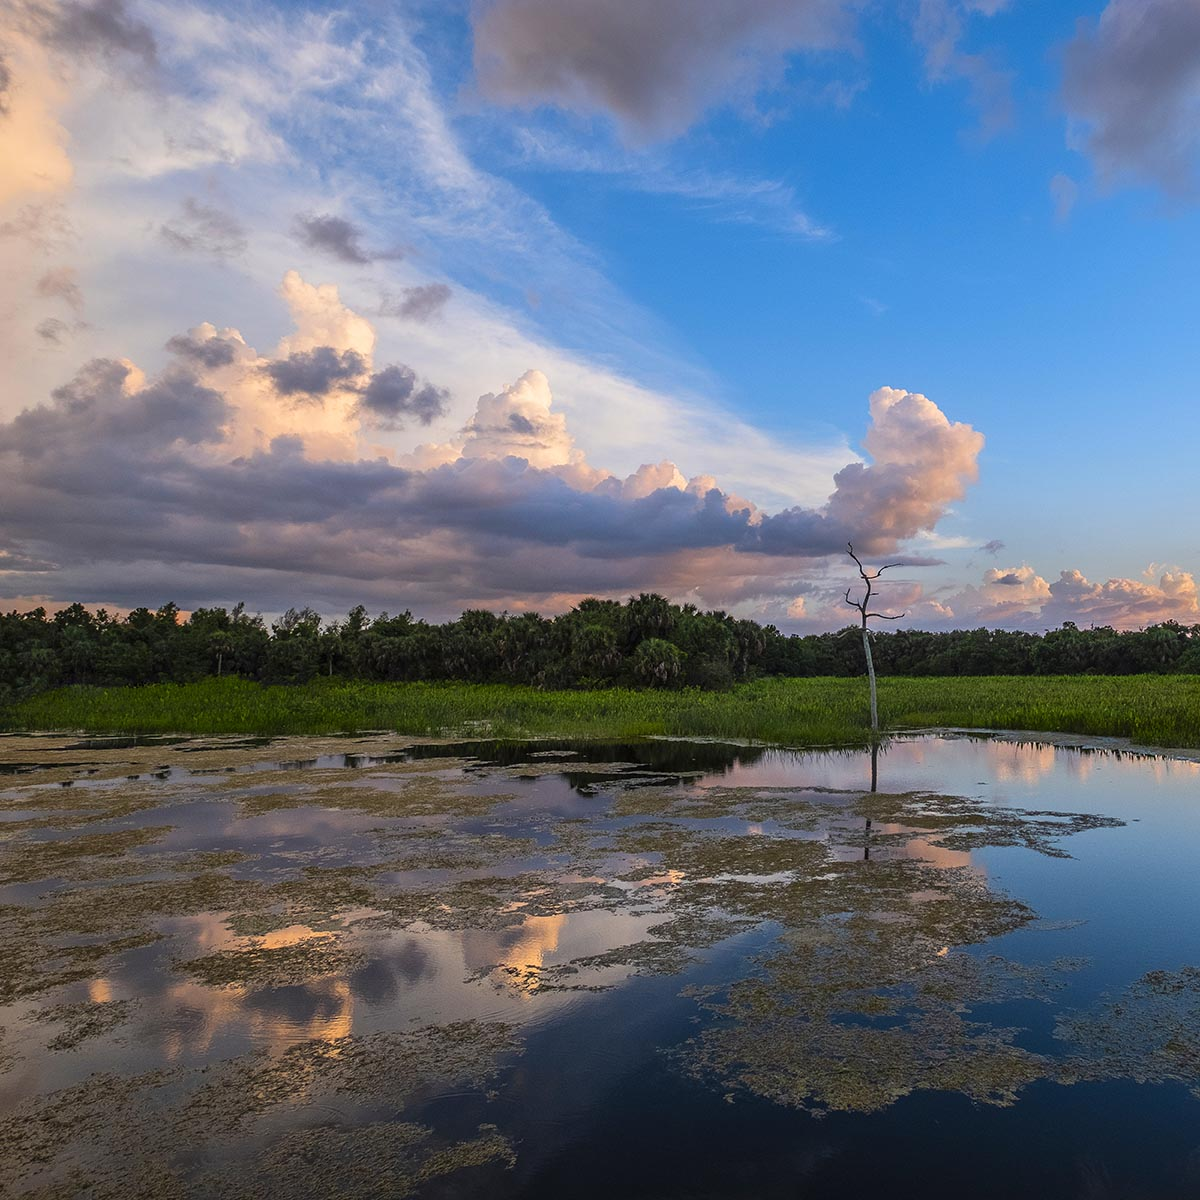 Free stock photo Dramatic sunset clouds form over the Green Cay Wetlands, Florida